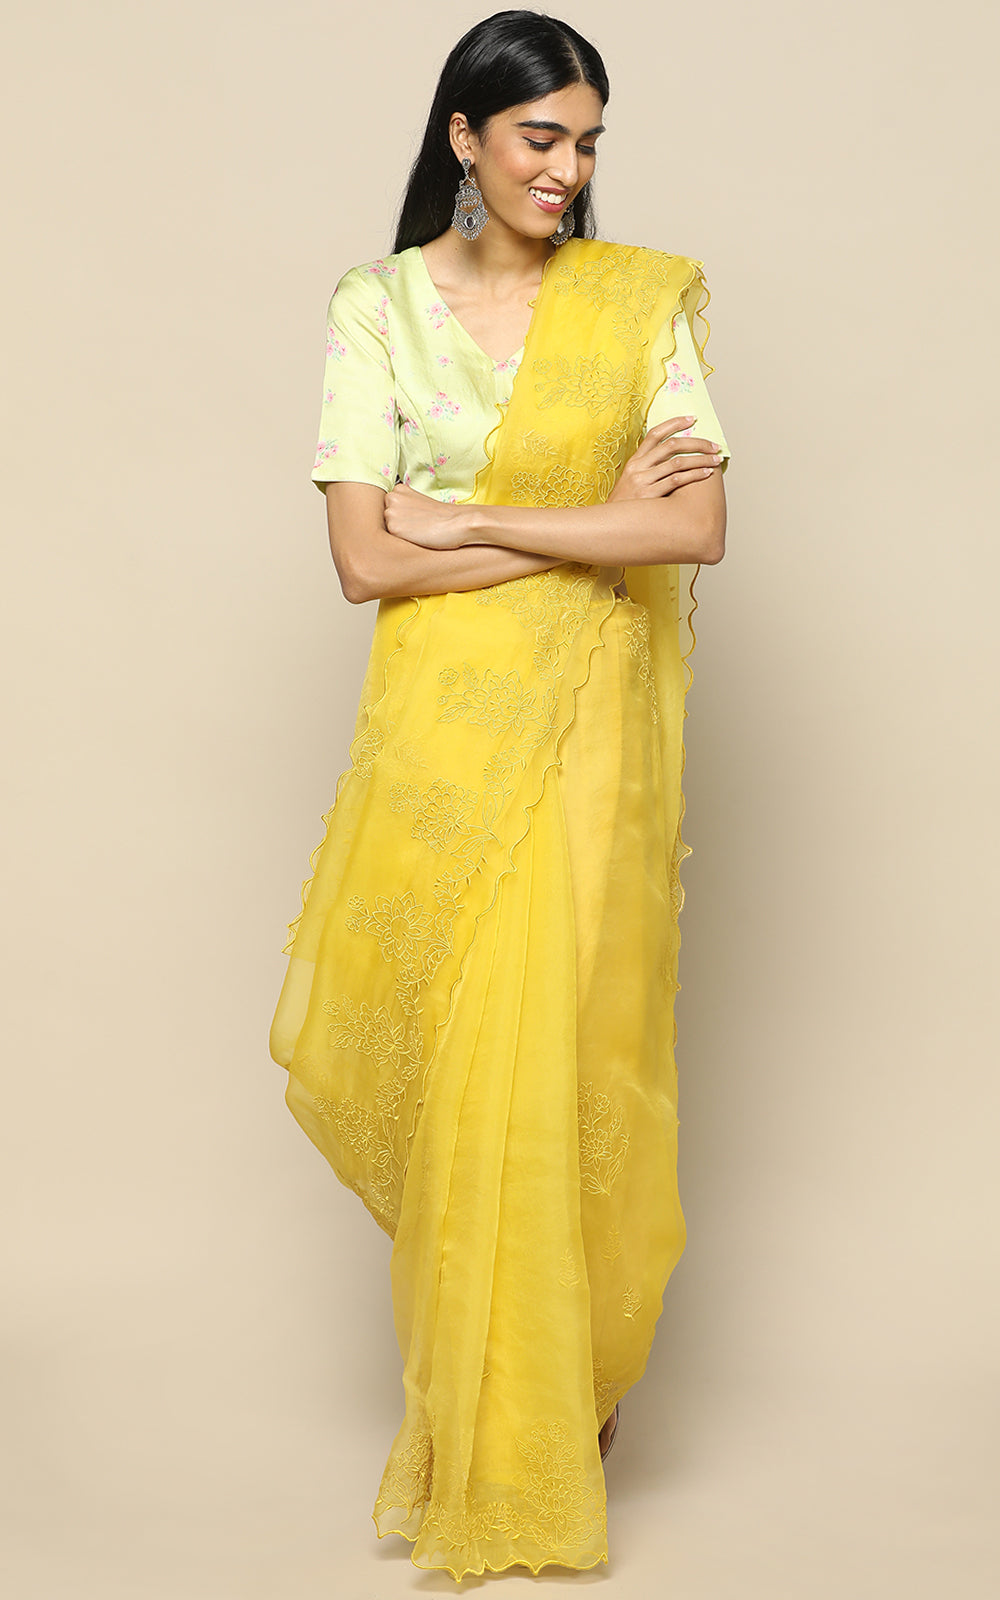 TURMERIC YELLOW ORGANZA SILK SAREE WITH EMBROIDERY